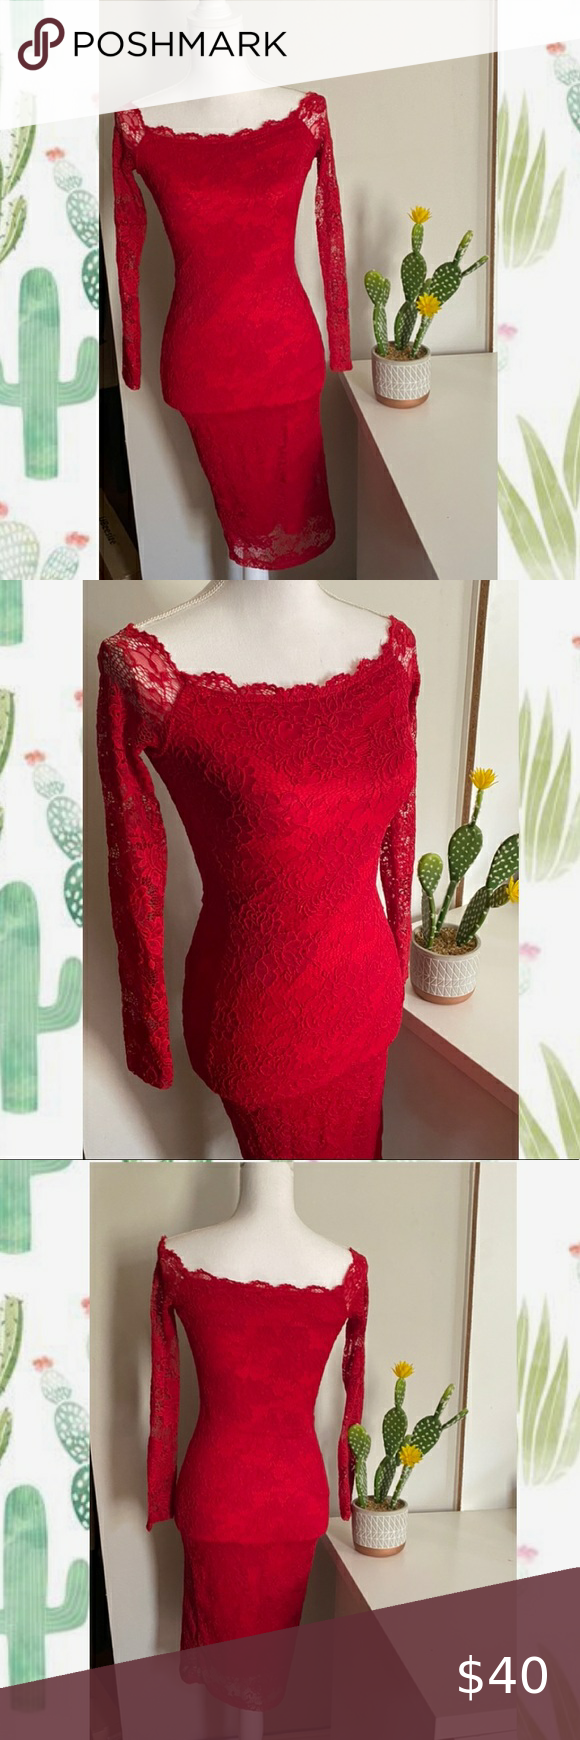 Windsor Knee Length Long Sleeve Red Lace Dress Grace Them W Lace Dress Features An Elastic Can B Red Lace Long Sleeve Dress Red Lace Dress Mini Velvet Dress [ 1740 x 580 Pixel ]